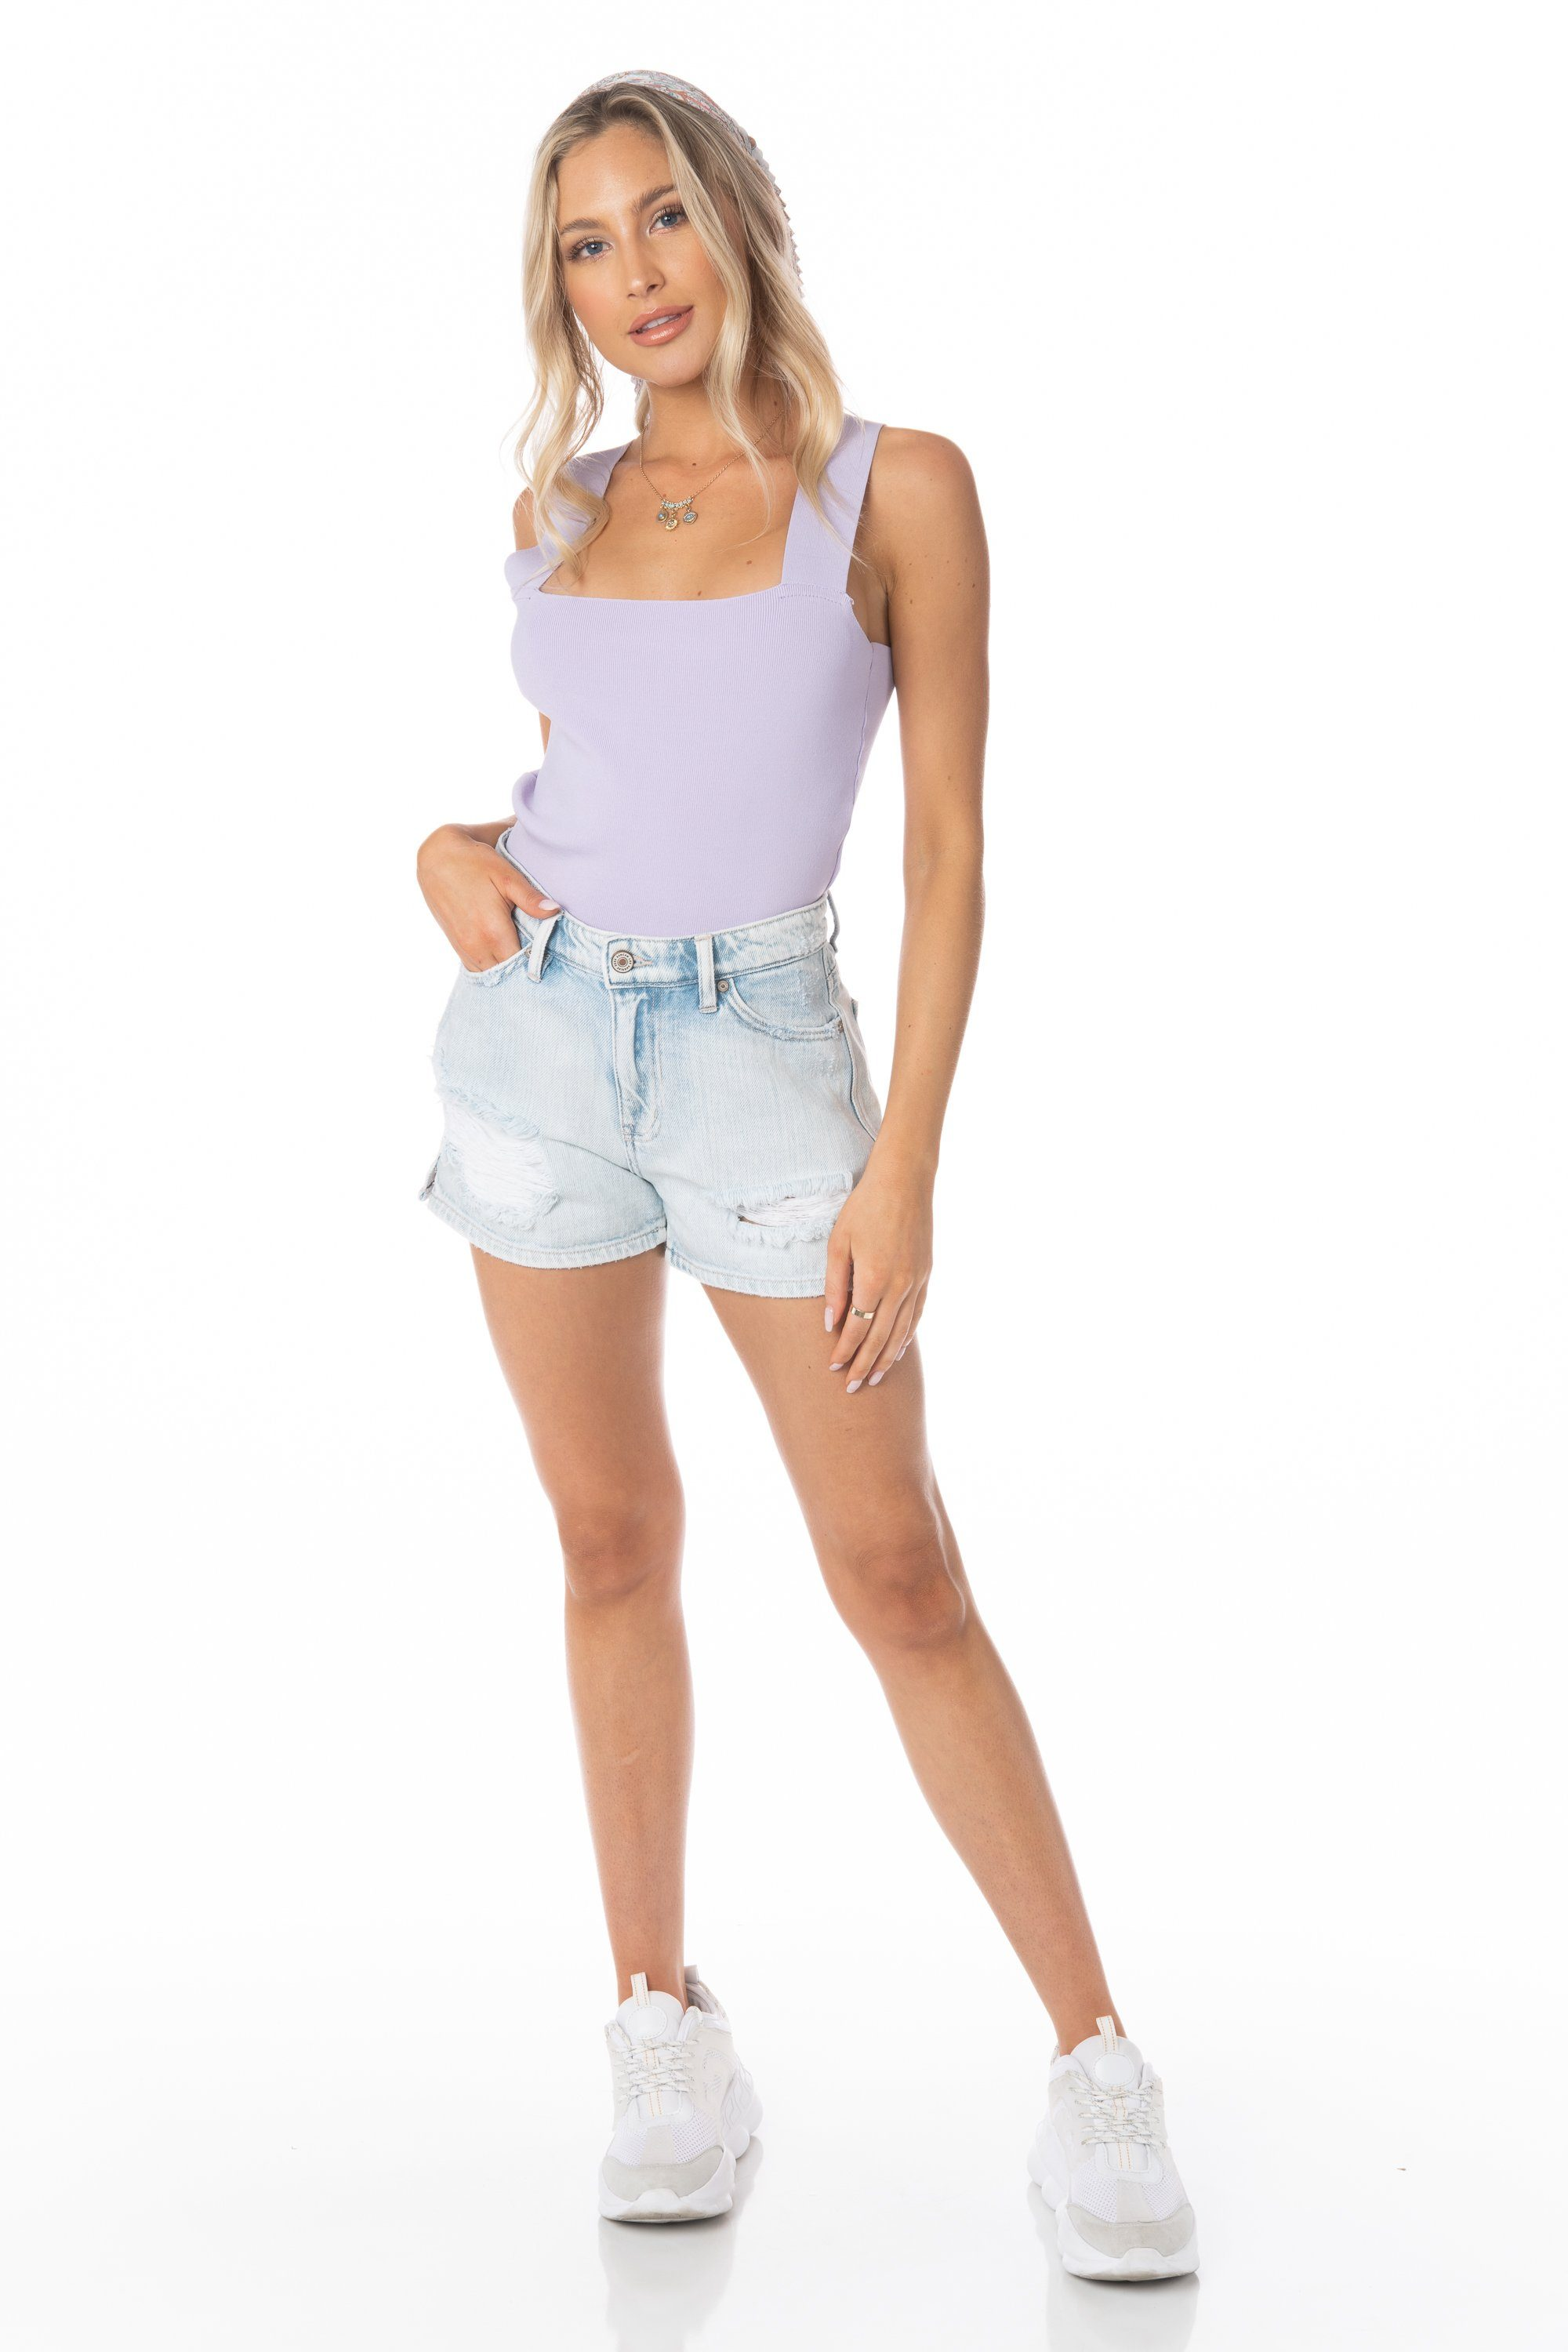 Purple Cropped Tank V Strap Back Tops HYPEACH BOUTIQUE